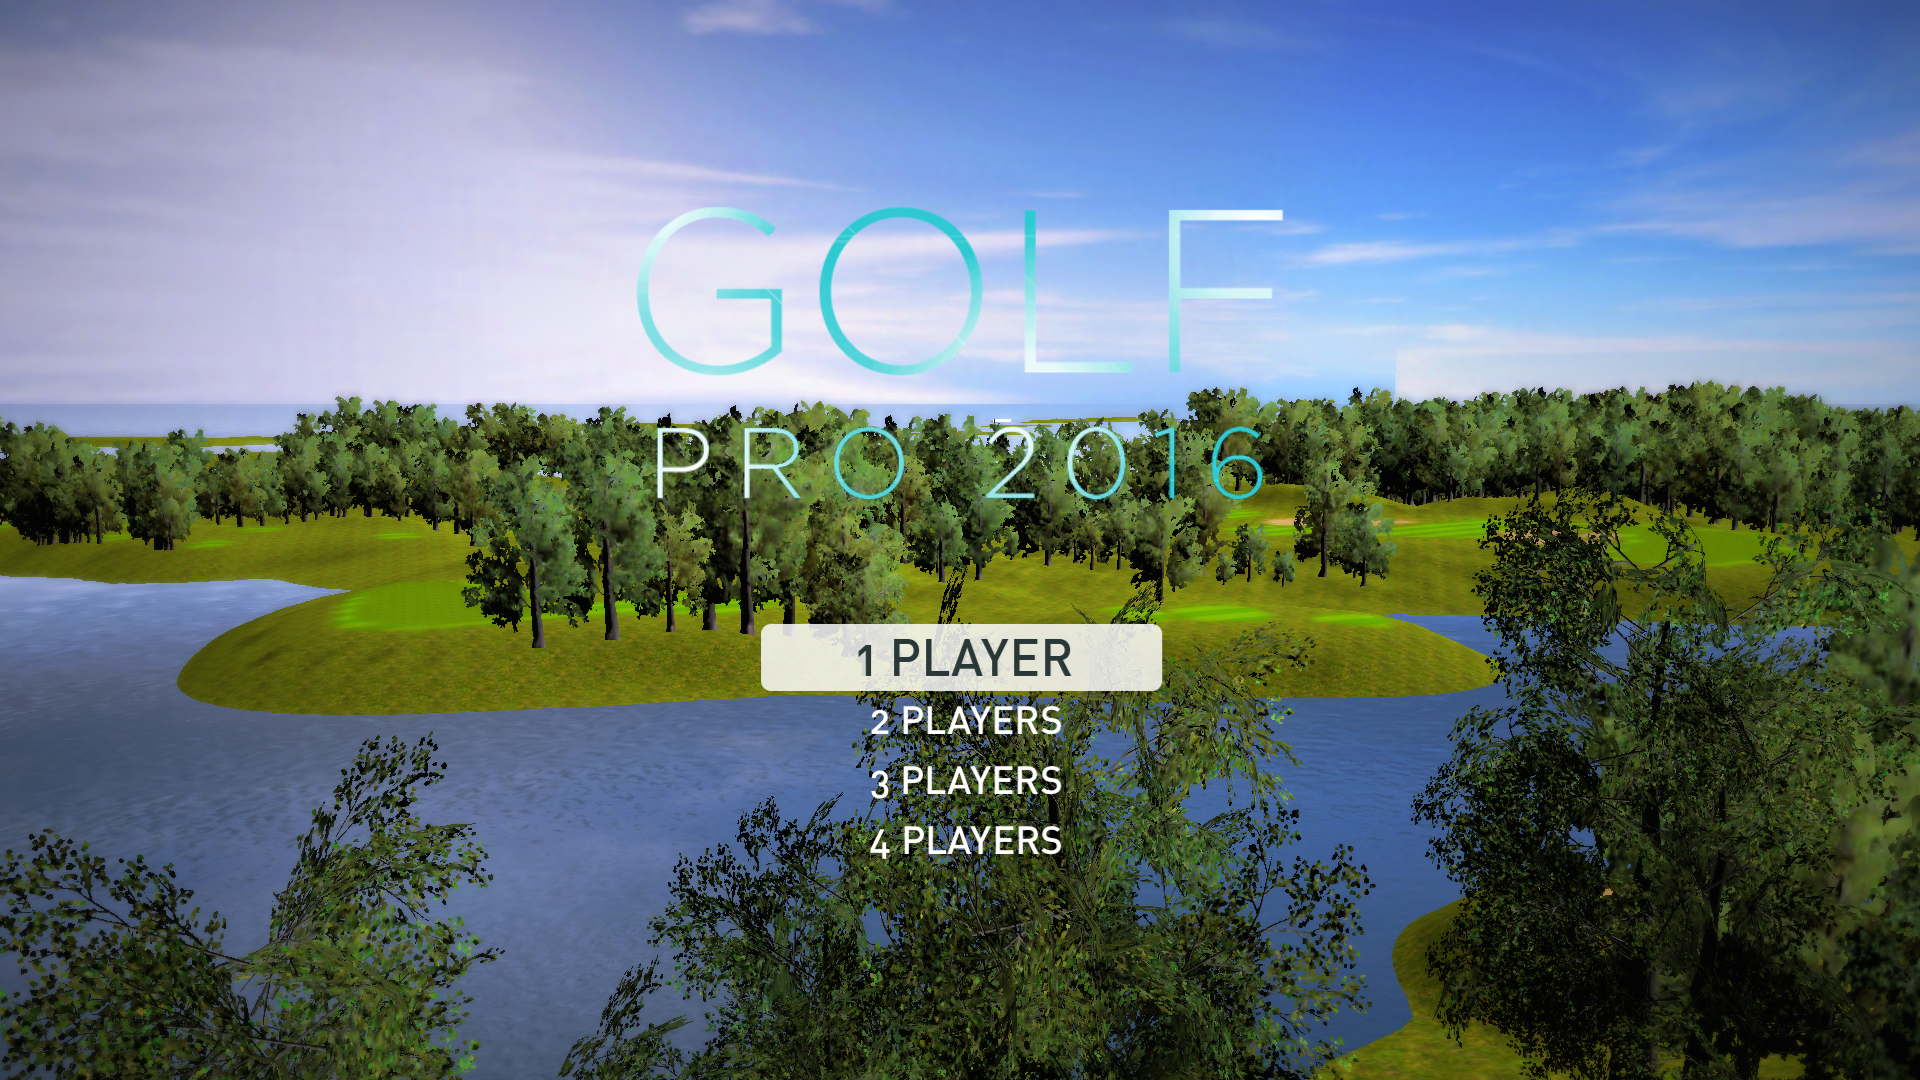 Golf Pro - Masters Tour screenshot 2